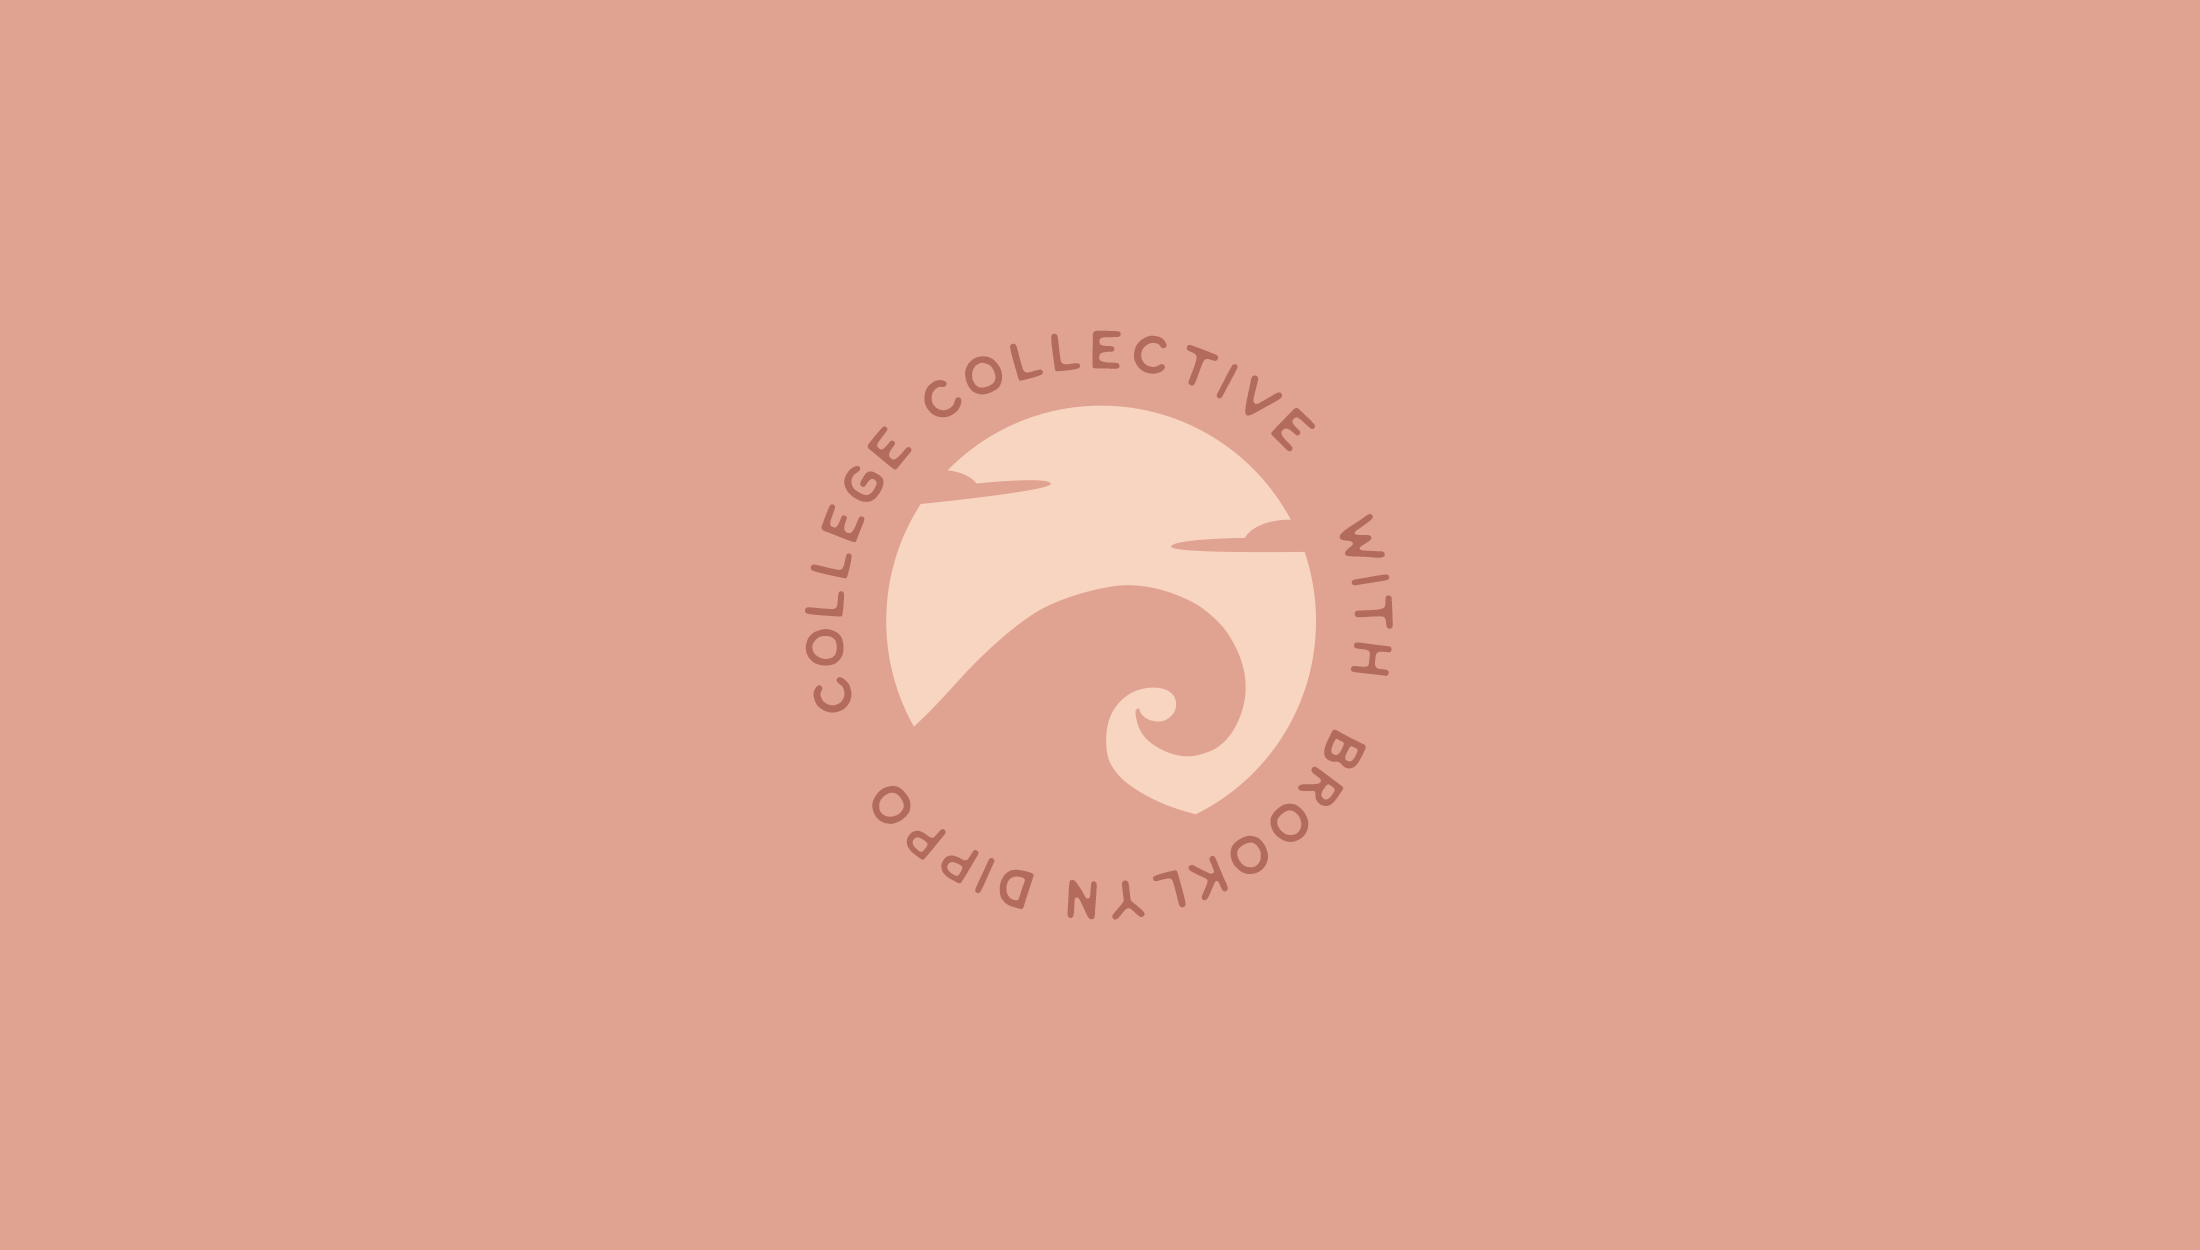 Logomark design for College Collective, The College Collective membership gives students a step-by-step plan for applying to college with the support of a community full of other educational professionals and peers - designed by Wiltshire-based graphic designer, Kaye Huett